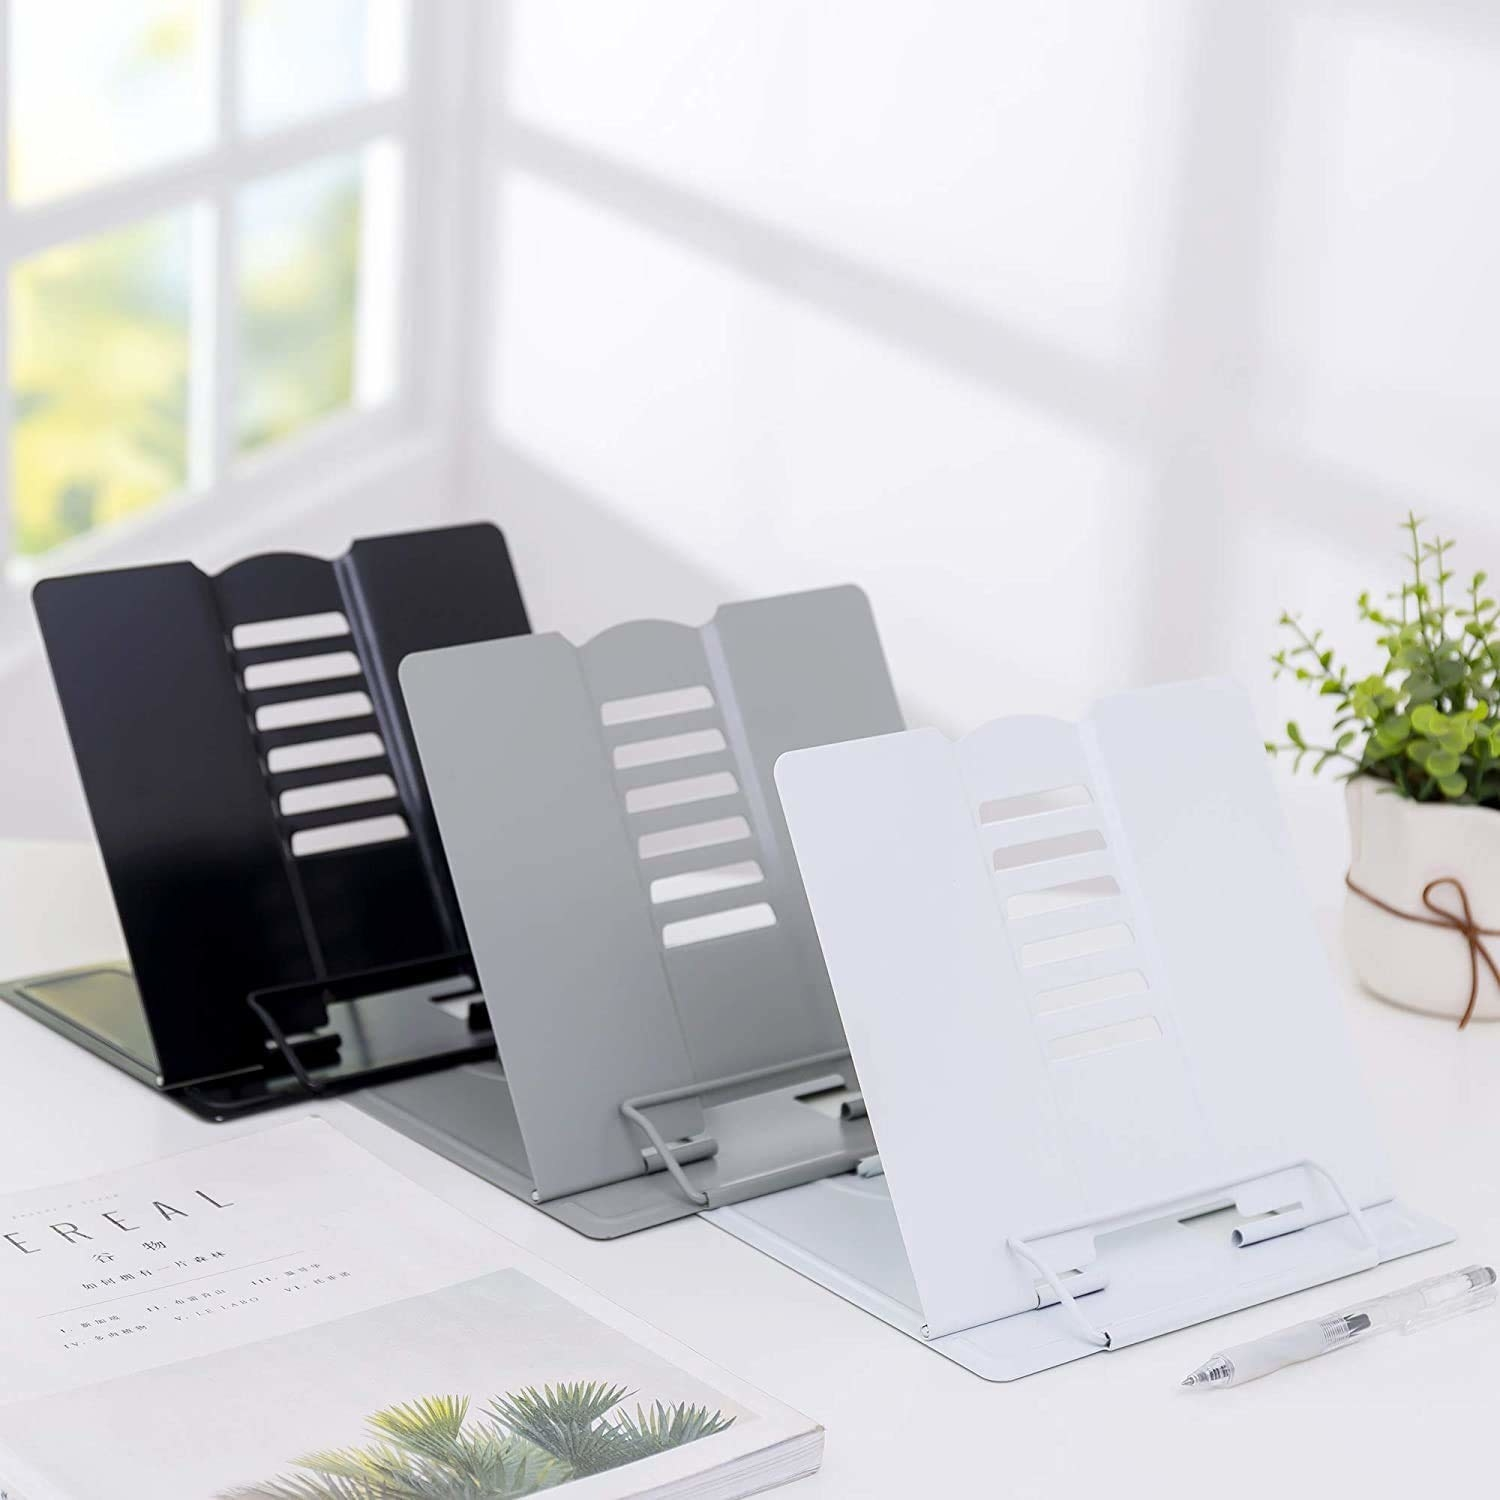 A set of 3 document holders on a table